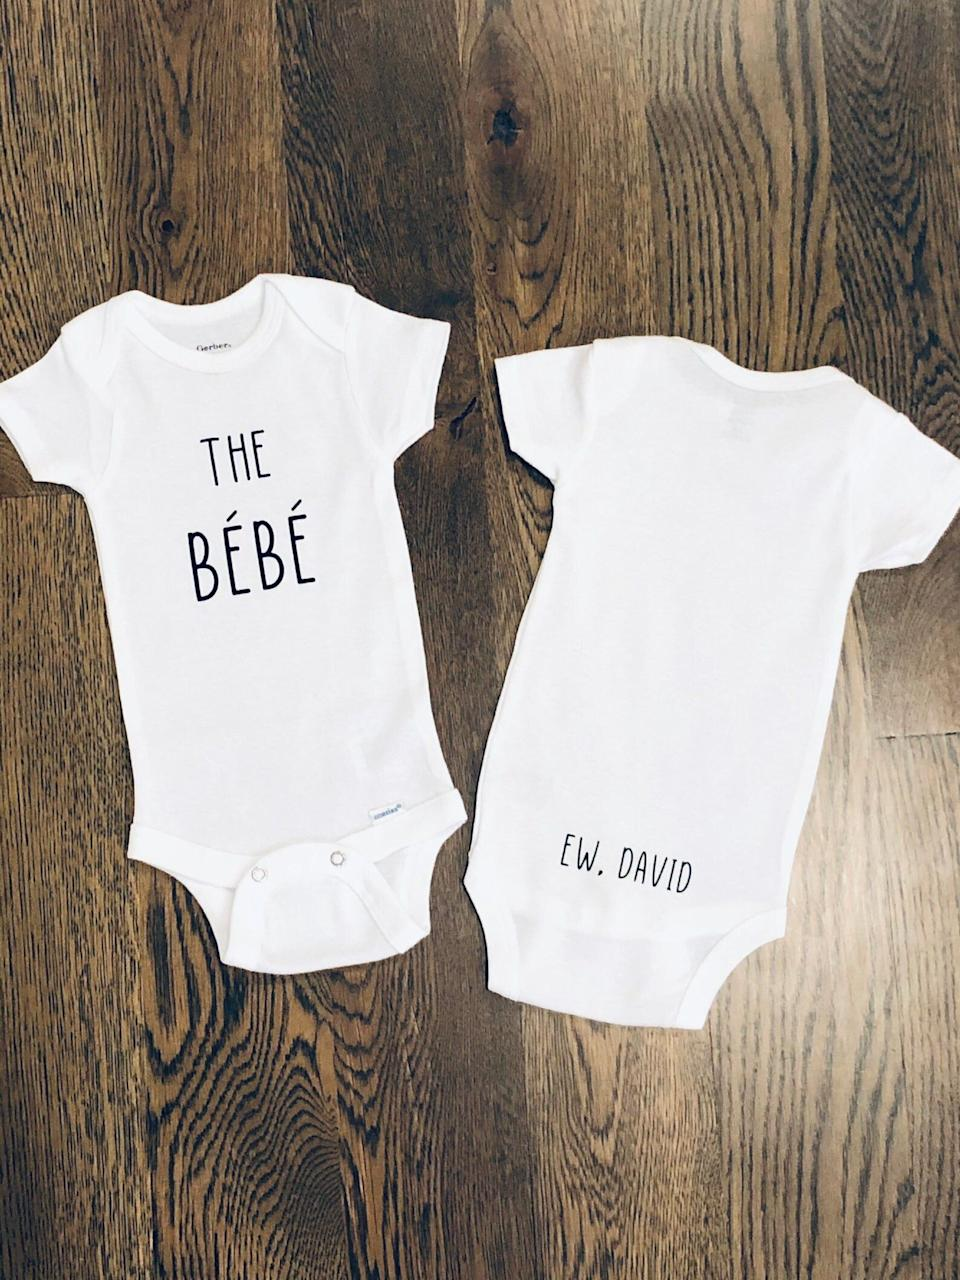 """Available in sizes newborn to 18 months. <a href=""""https://fave.co/3qnZopt"""" target=""""_blank"""" rel=""""noopener noreferrer"""">Get it for $15+ at Etsy</a>."""